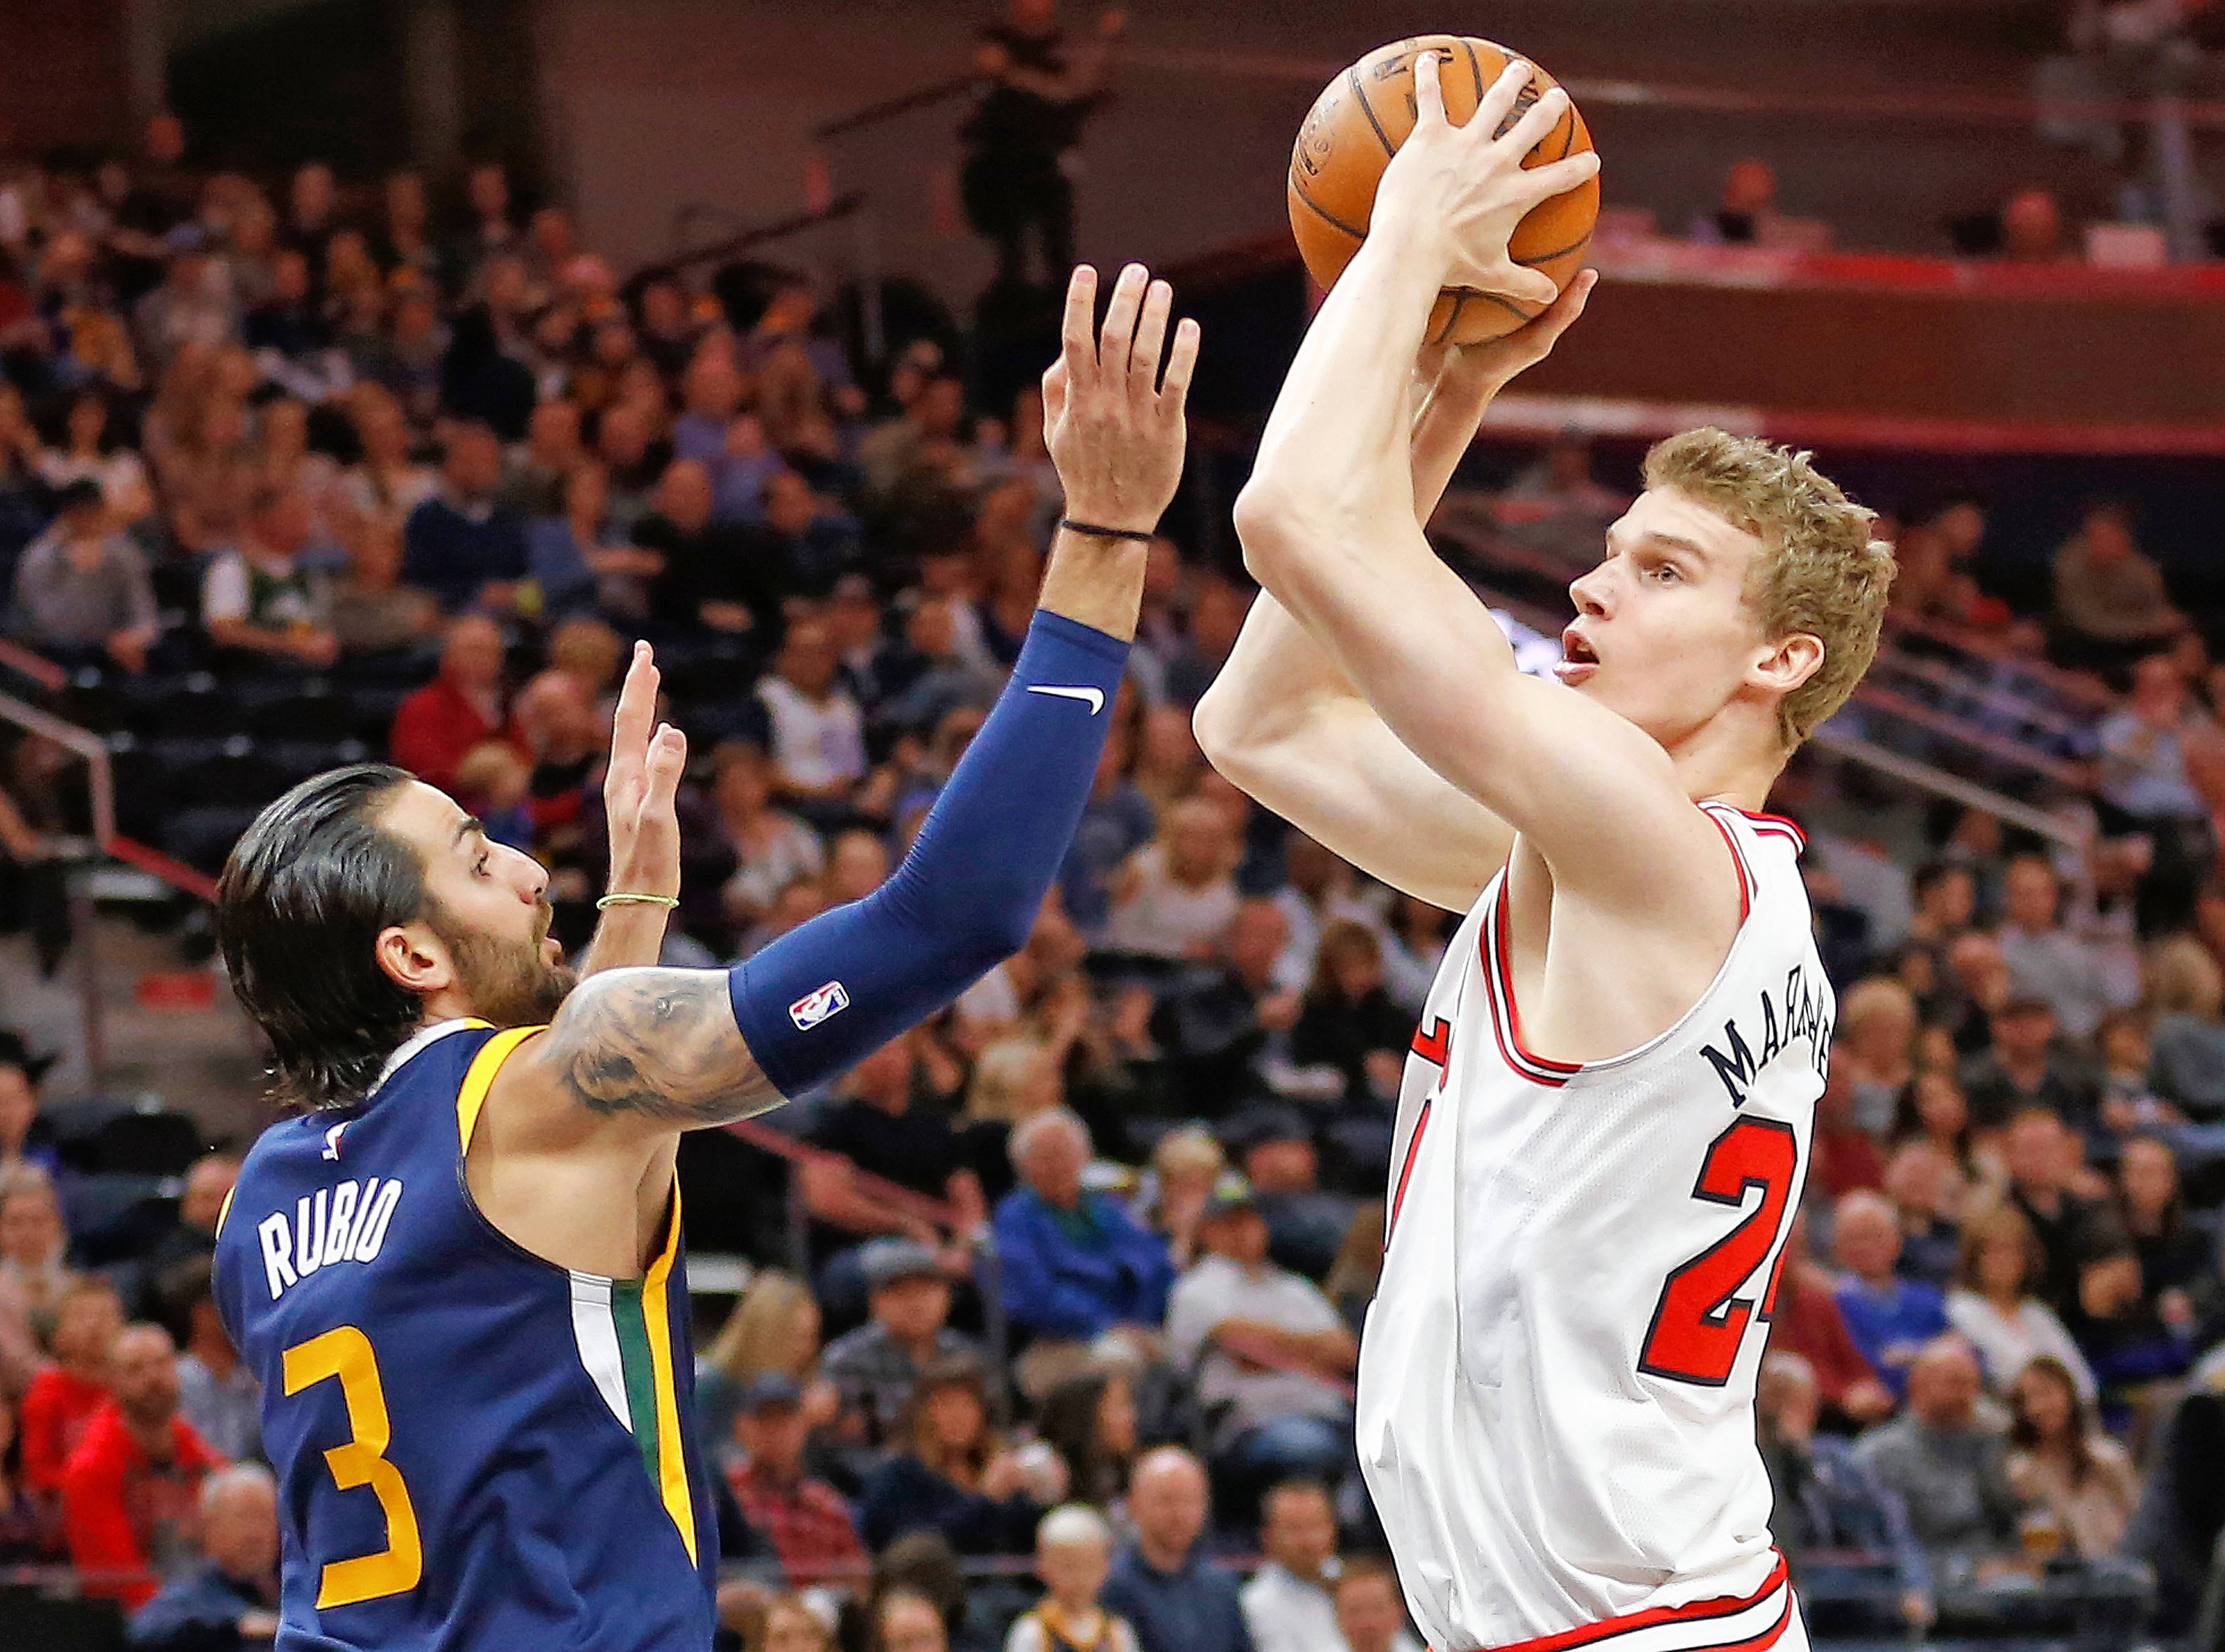 Bulls' Hoiberg confident Markkanen can shake off shooting slump